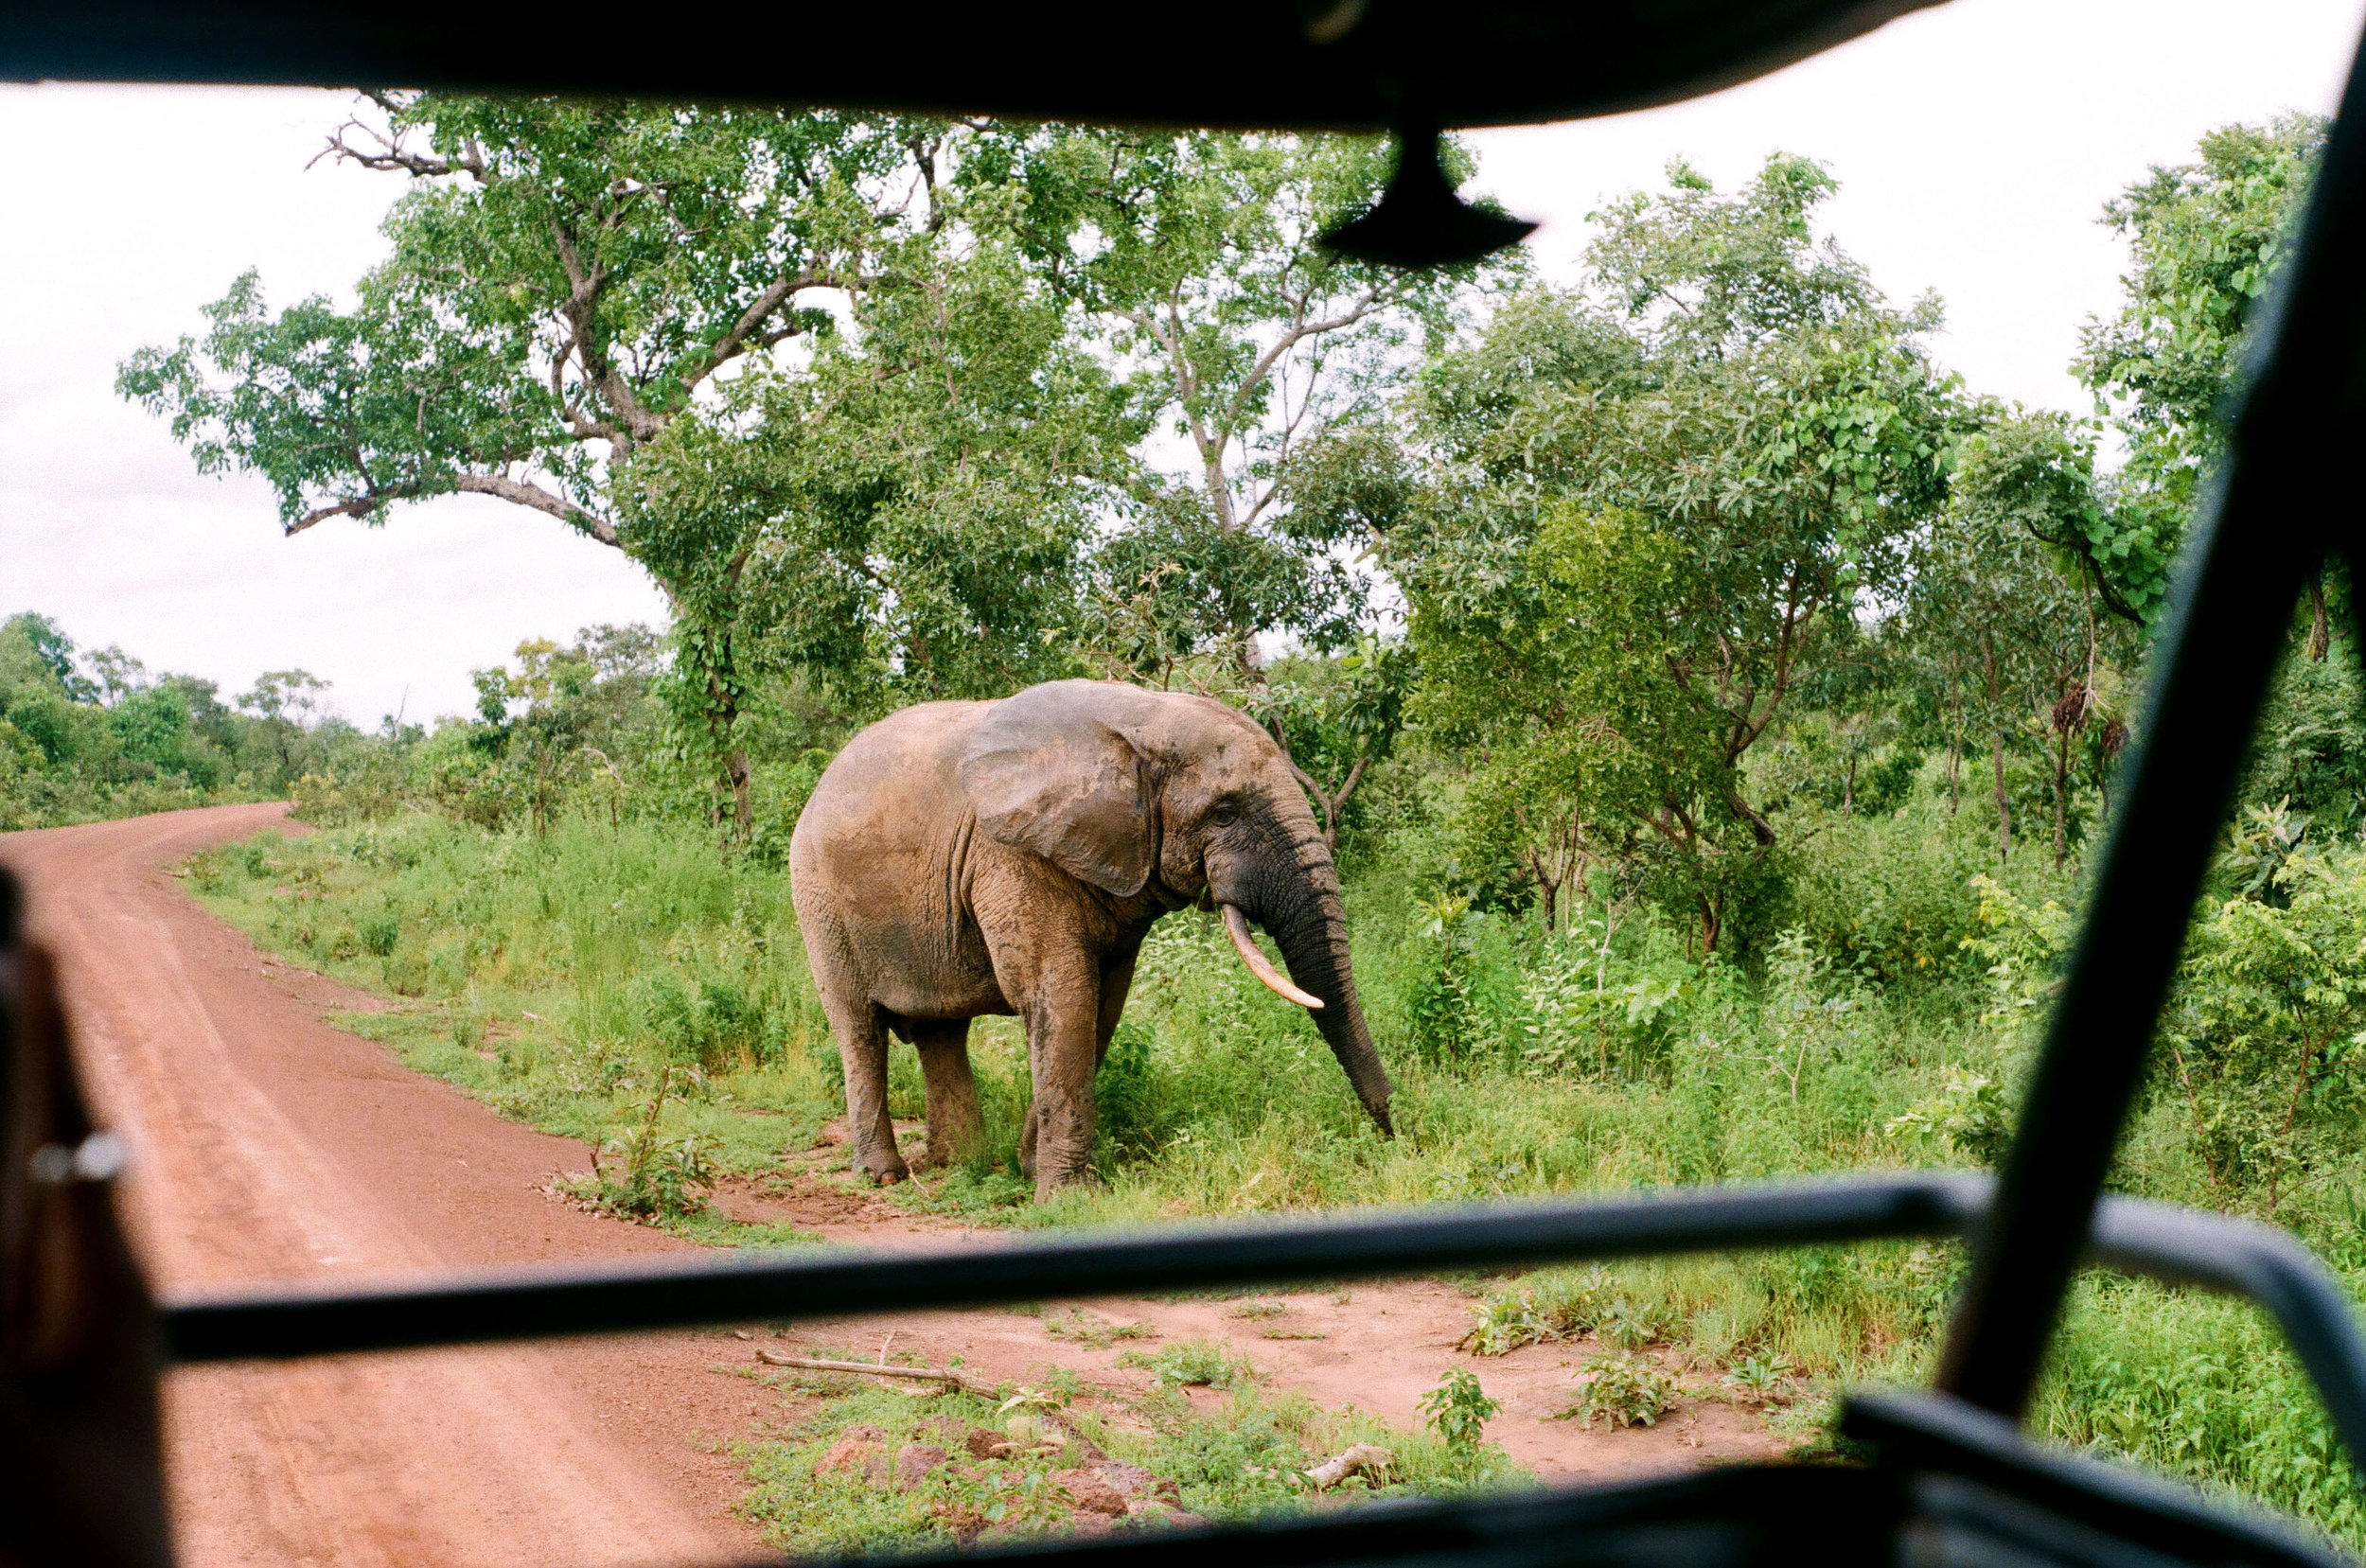 On our way back to Zaina Lodge we came across this beautiful elephant, what a way to end the day.